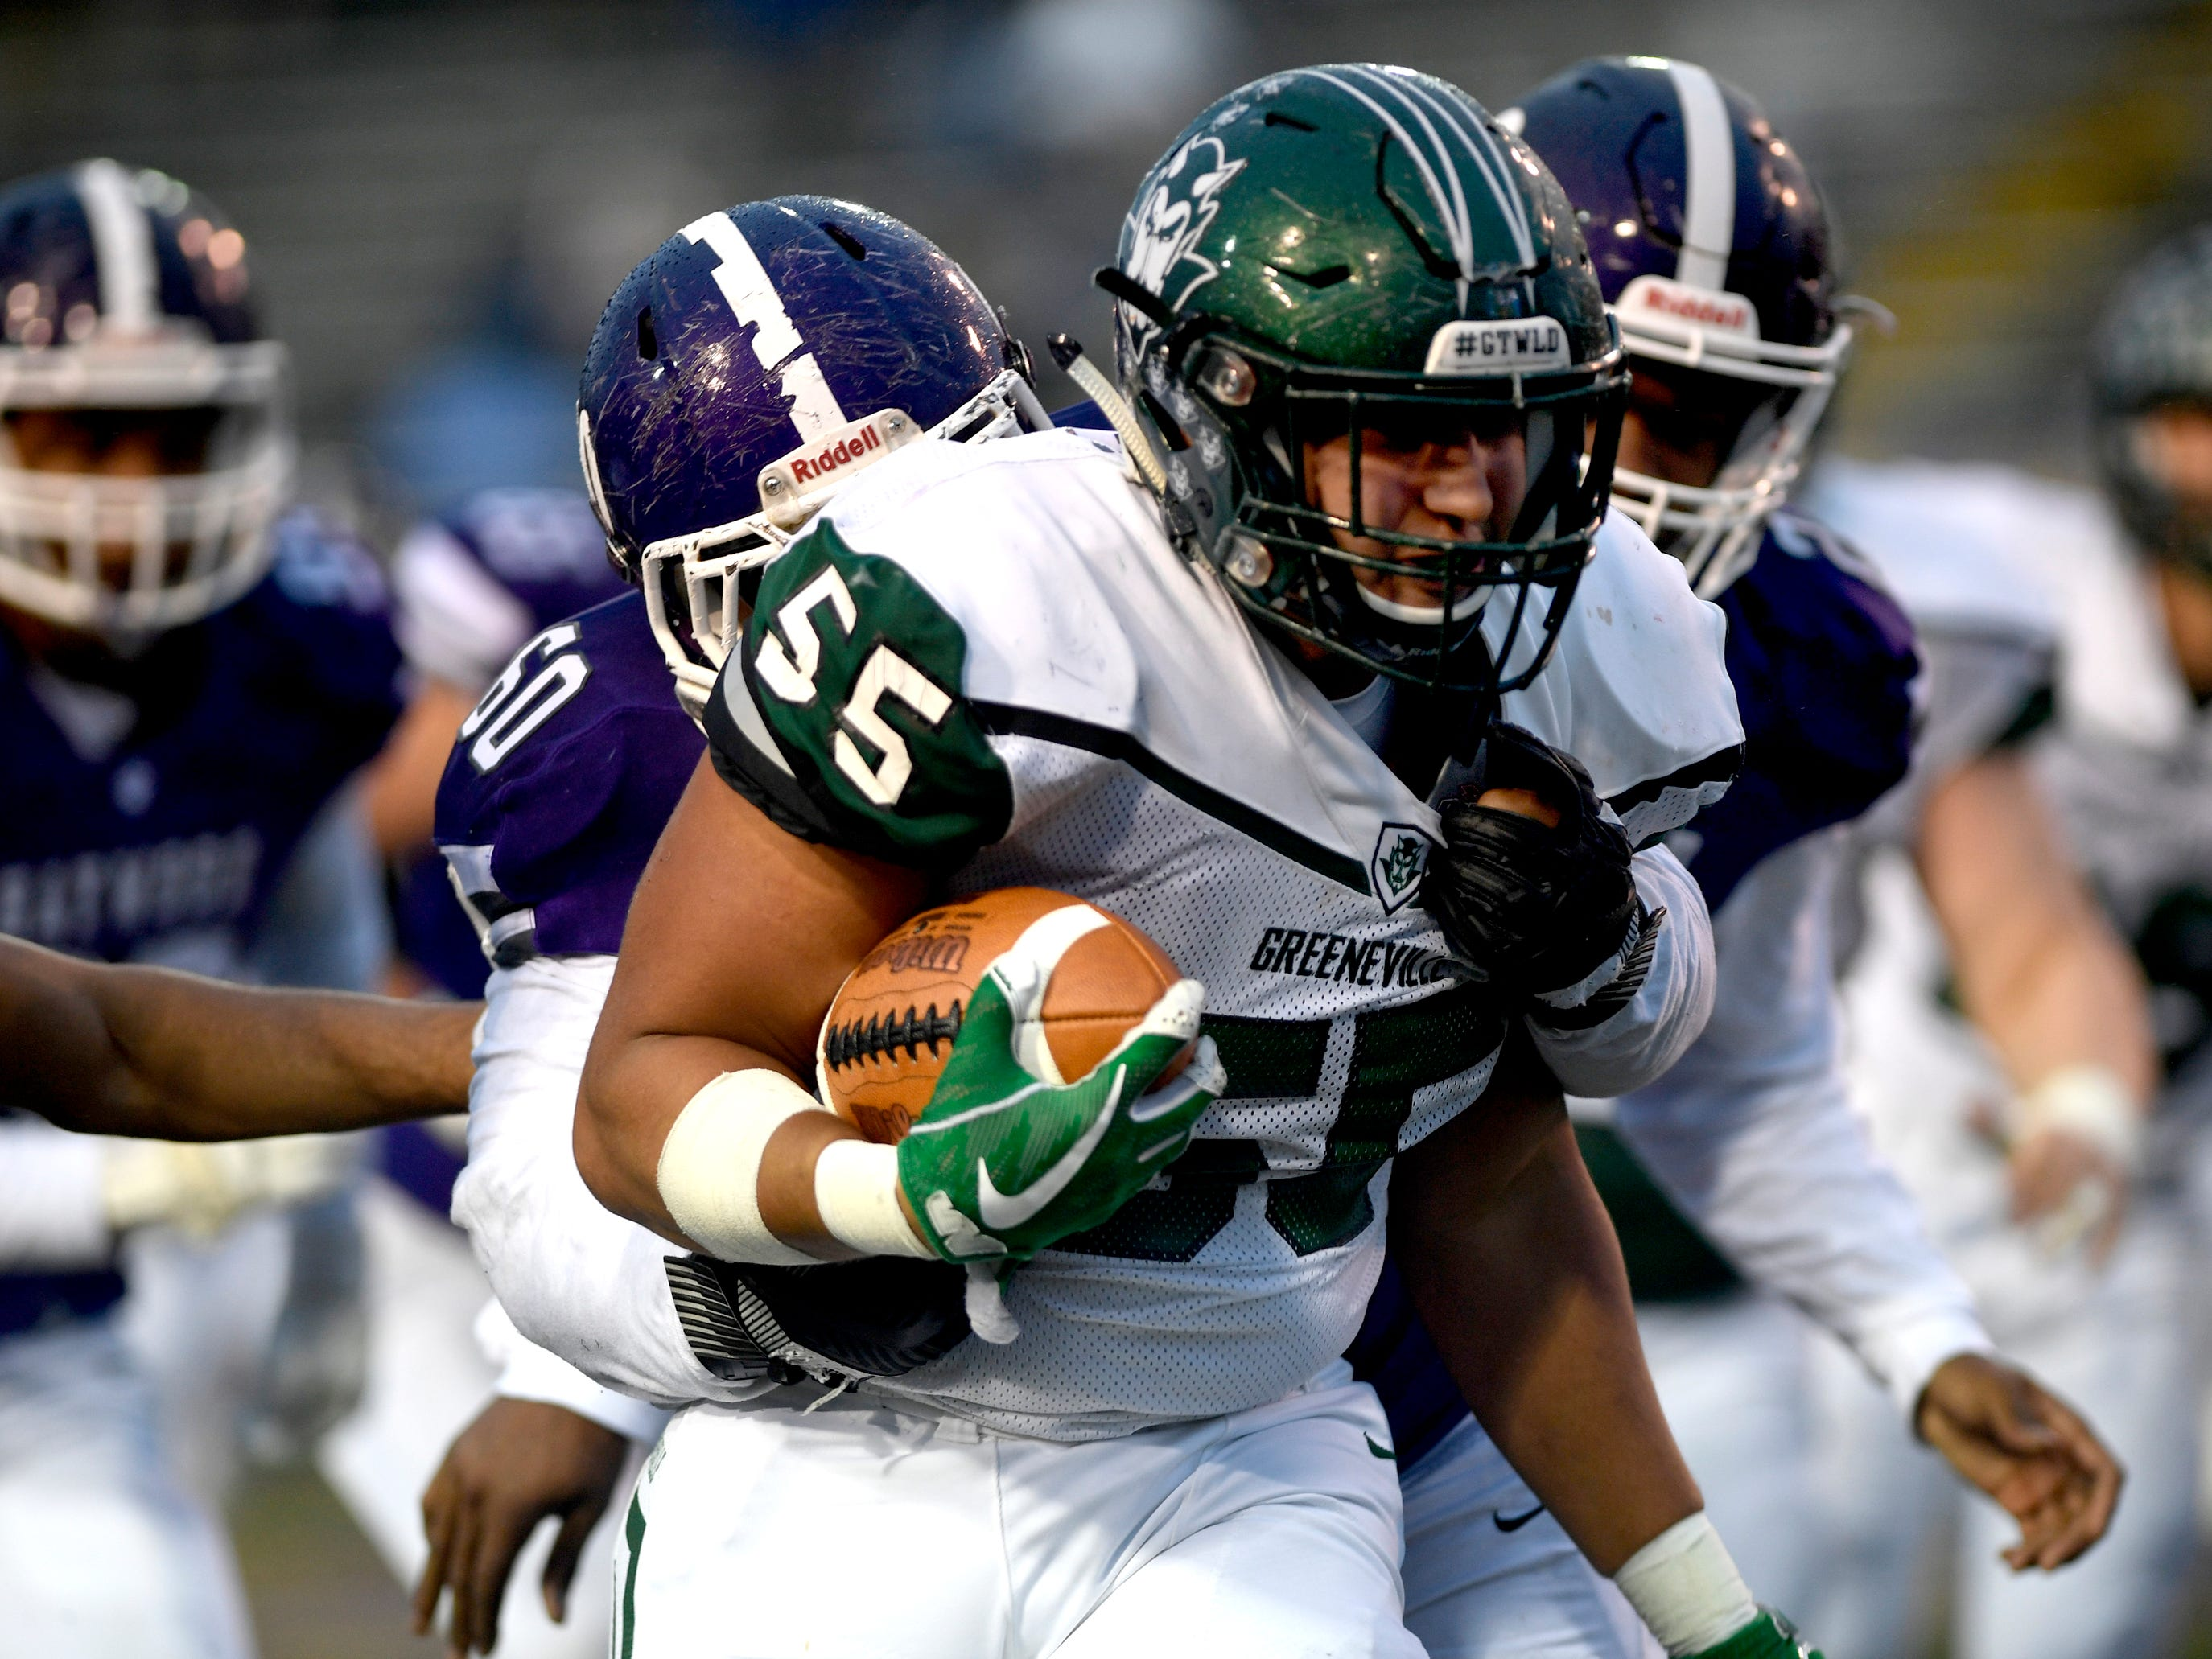 Greeneville's Logan Shipley (55) runs the ball after recovering a fumble made by Haywood's Deyondrius Hines (2) during the Class 4A BlueCross Bowl state championship Thursday, Nov. 29, 2018, at Tennessee Tech's Tucker Stadium in Cookeville, Tenn.